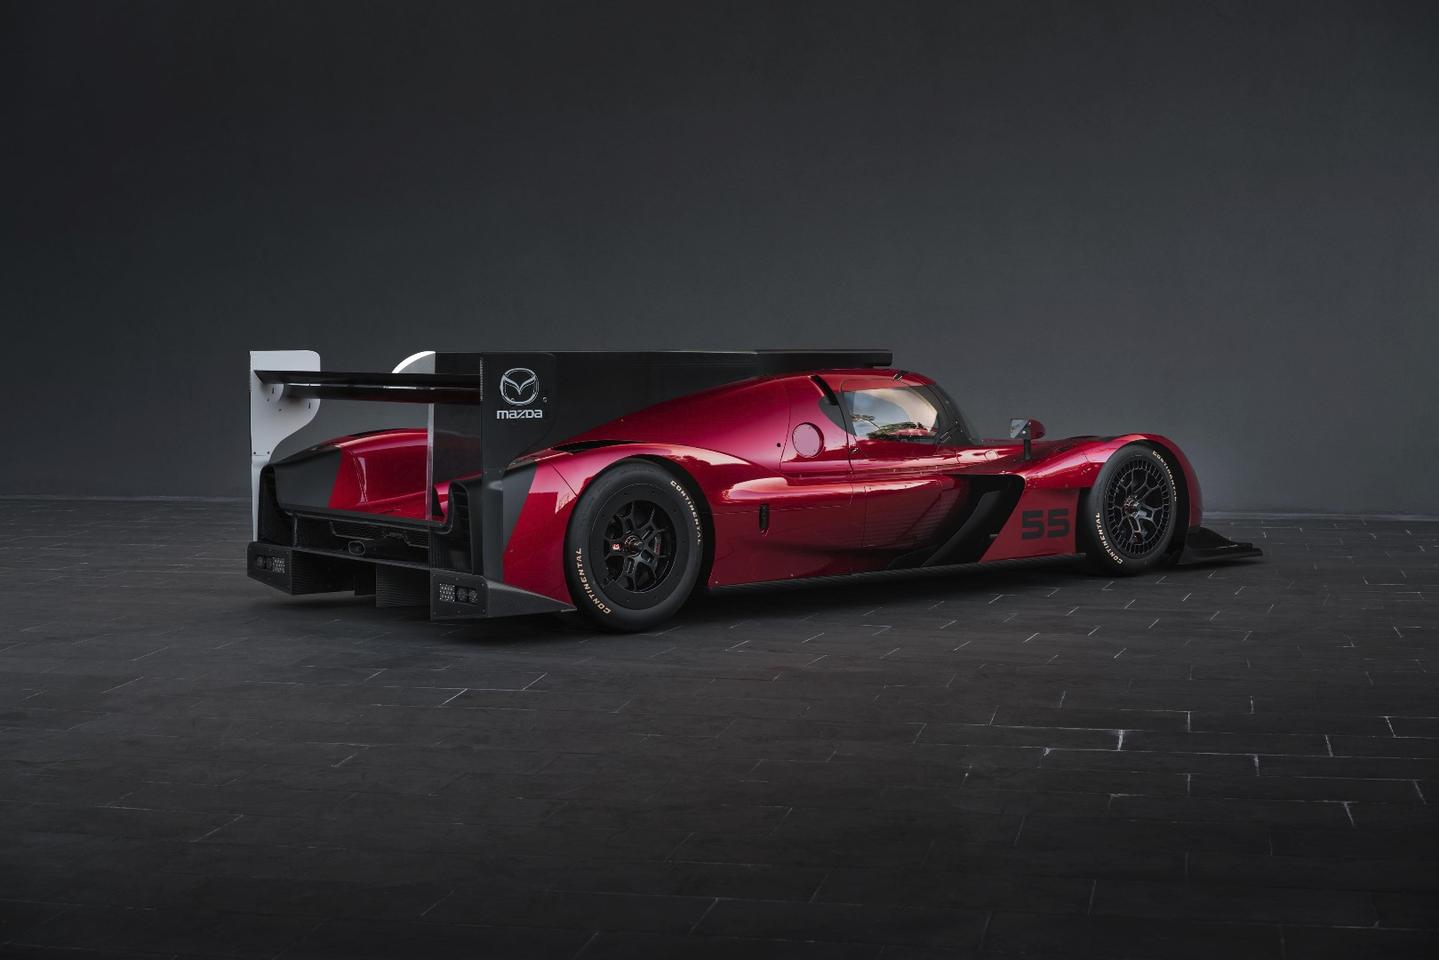 The IMSA WeatherTech SportsCar Championship is a premier automotive track racing event in which two types of vehicles compete in four classes of racing simultaneously – the Mazda RT24-P is a new-generation car for the Prototype class on that circuit